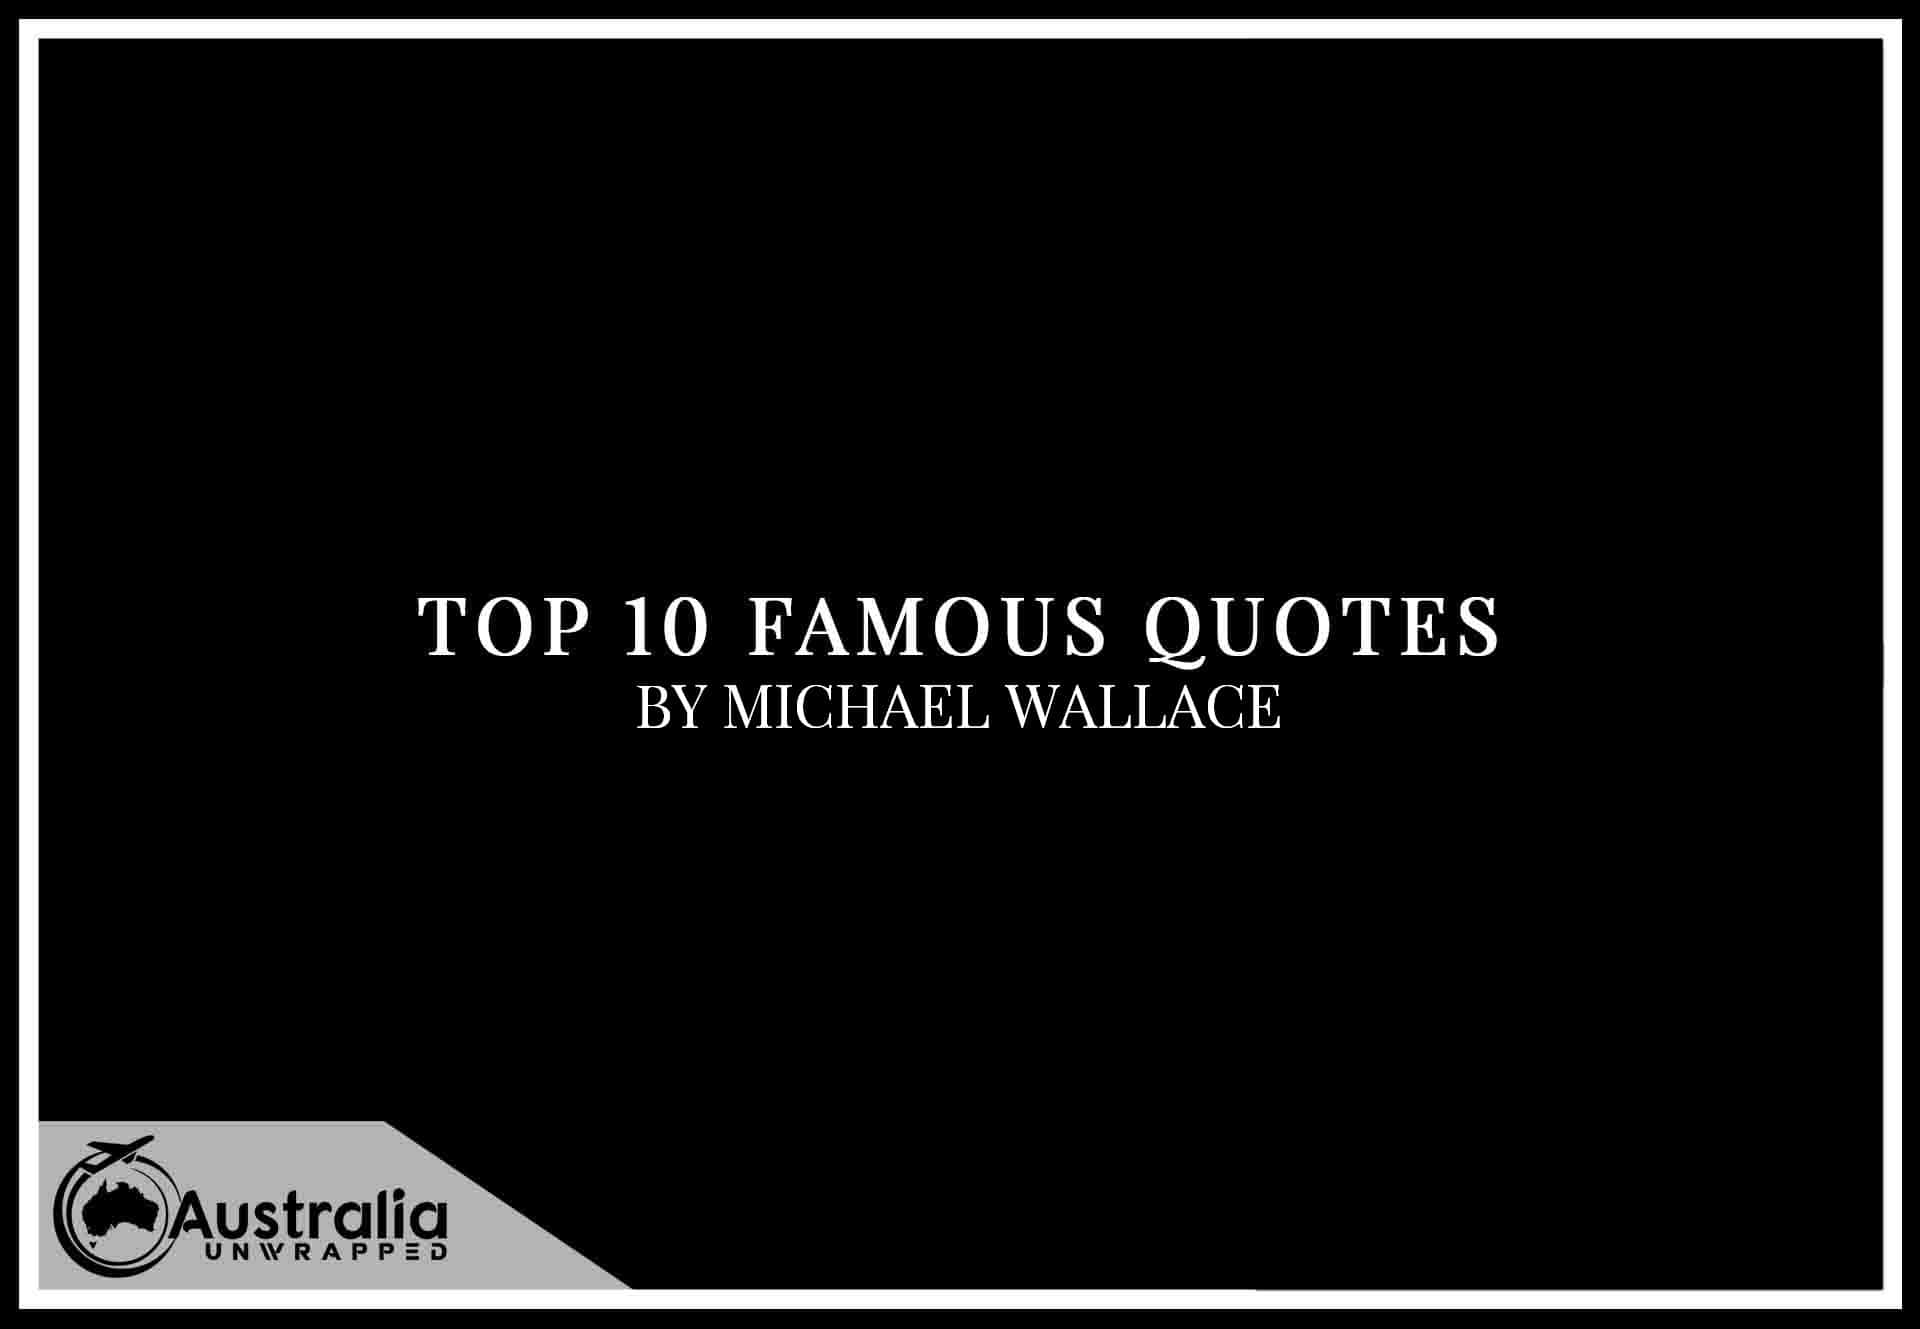 Top 10 Famous Quotes by Author Michael Wallace